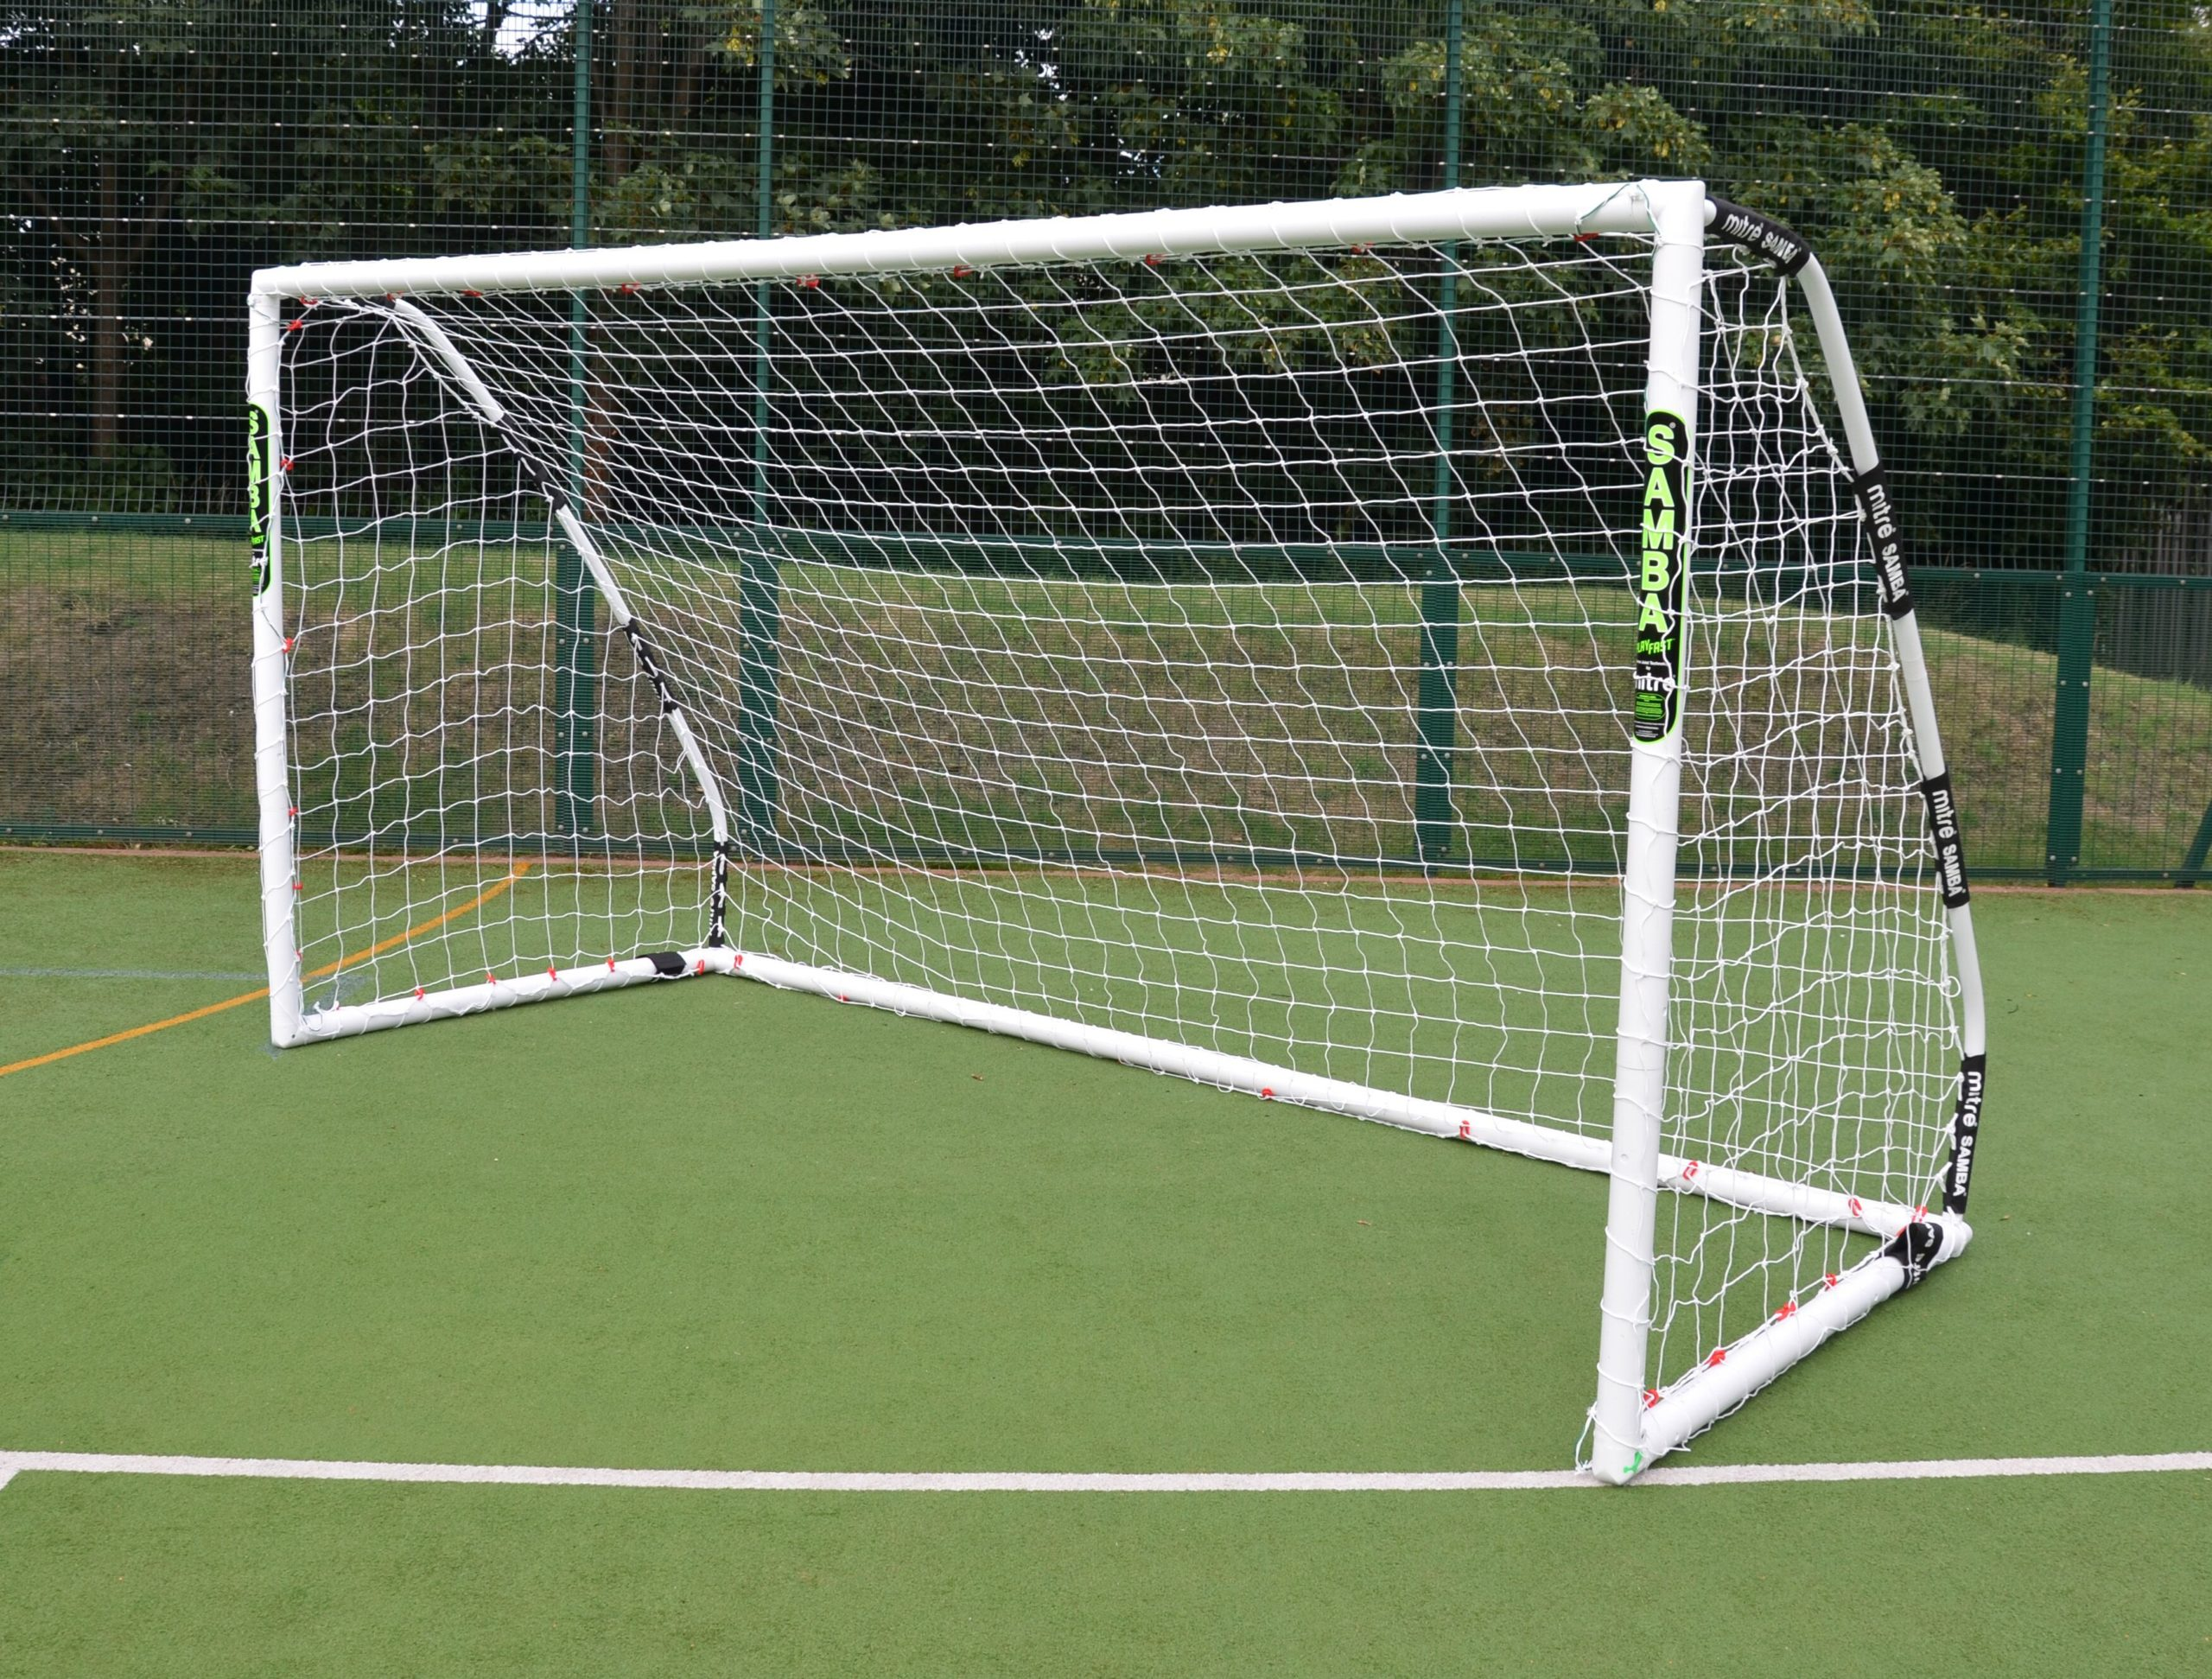 Samba Playfast goals 16'x7'